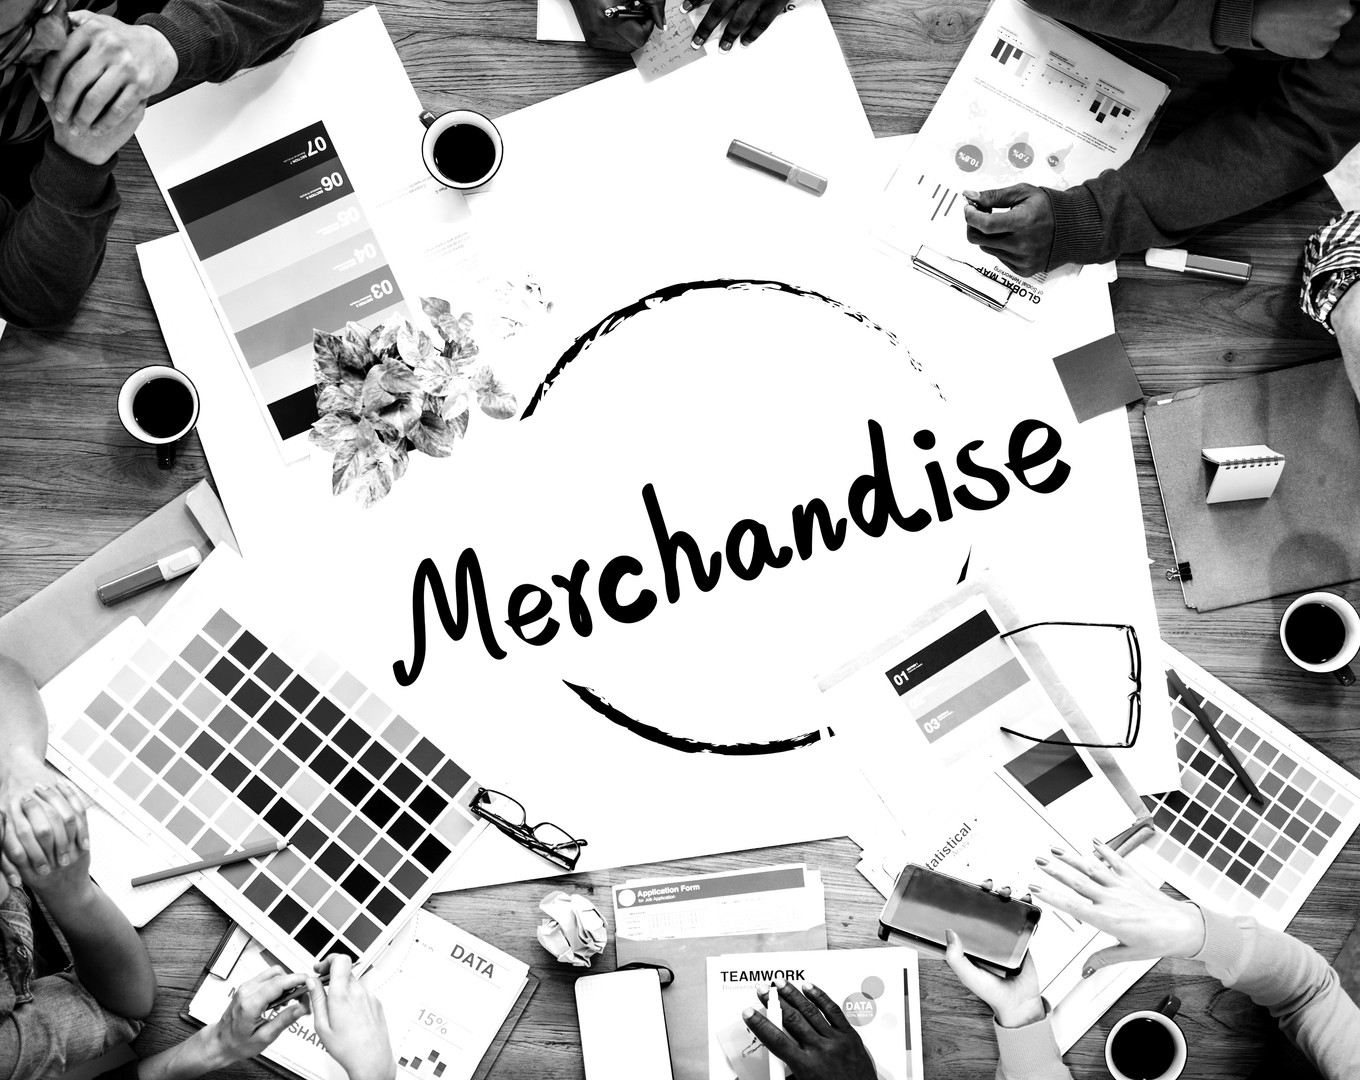 Team Promo, Team Promo UK Ltd, Promotional merchandise, promos, trade events, trade exhibitions, giveaways, corporate gifts, UK, worldwide, promotions, 4imprint, total merchandise, fluid branding, Event branding solutions, merchandise, Branded Pens, Branded Mugs, Branded Clothing, Customised, Your logo here, worldwide delivery, print our logo, custom clothing suppliers london, promotional merchandise ideas london